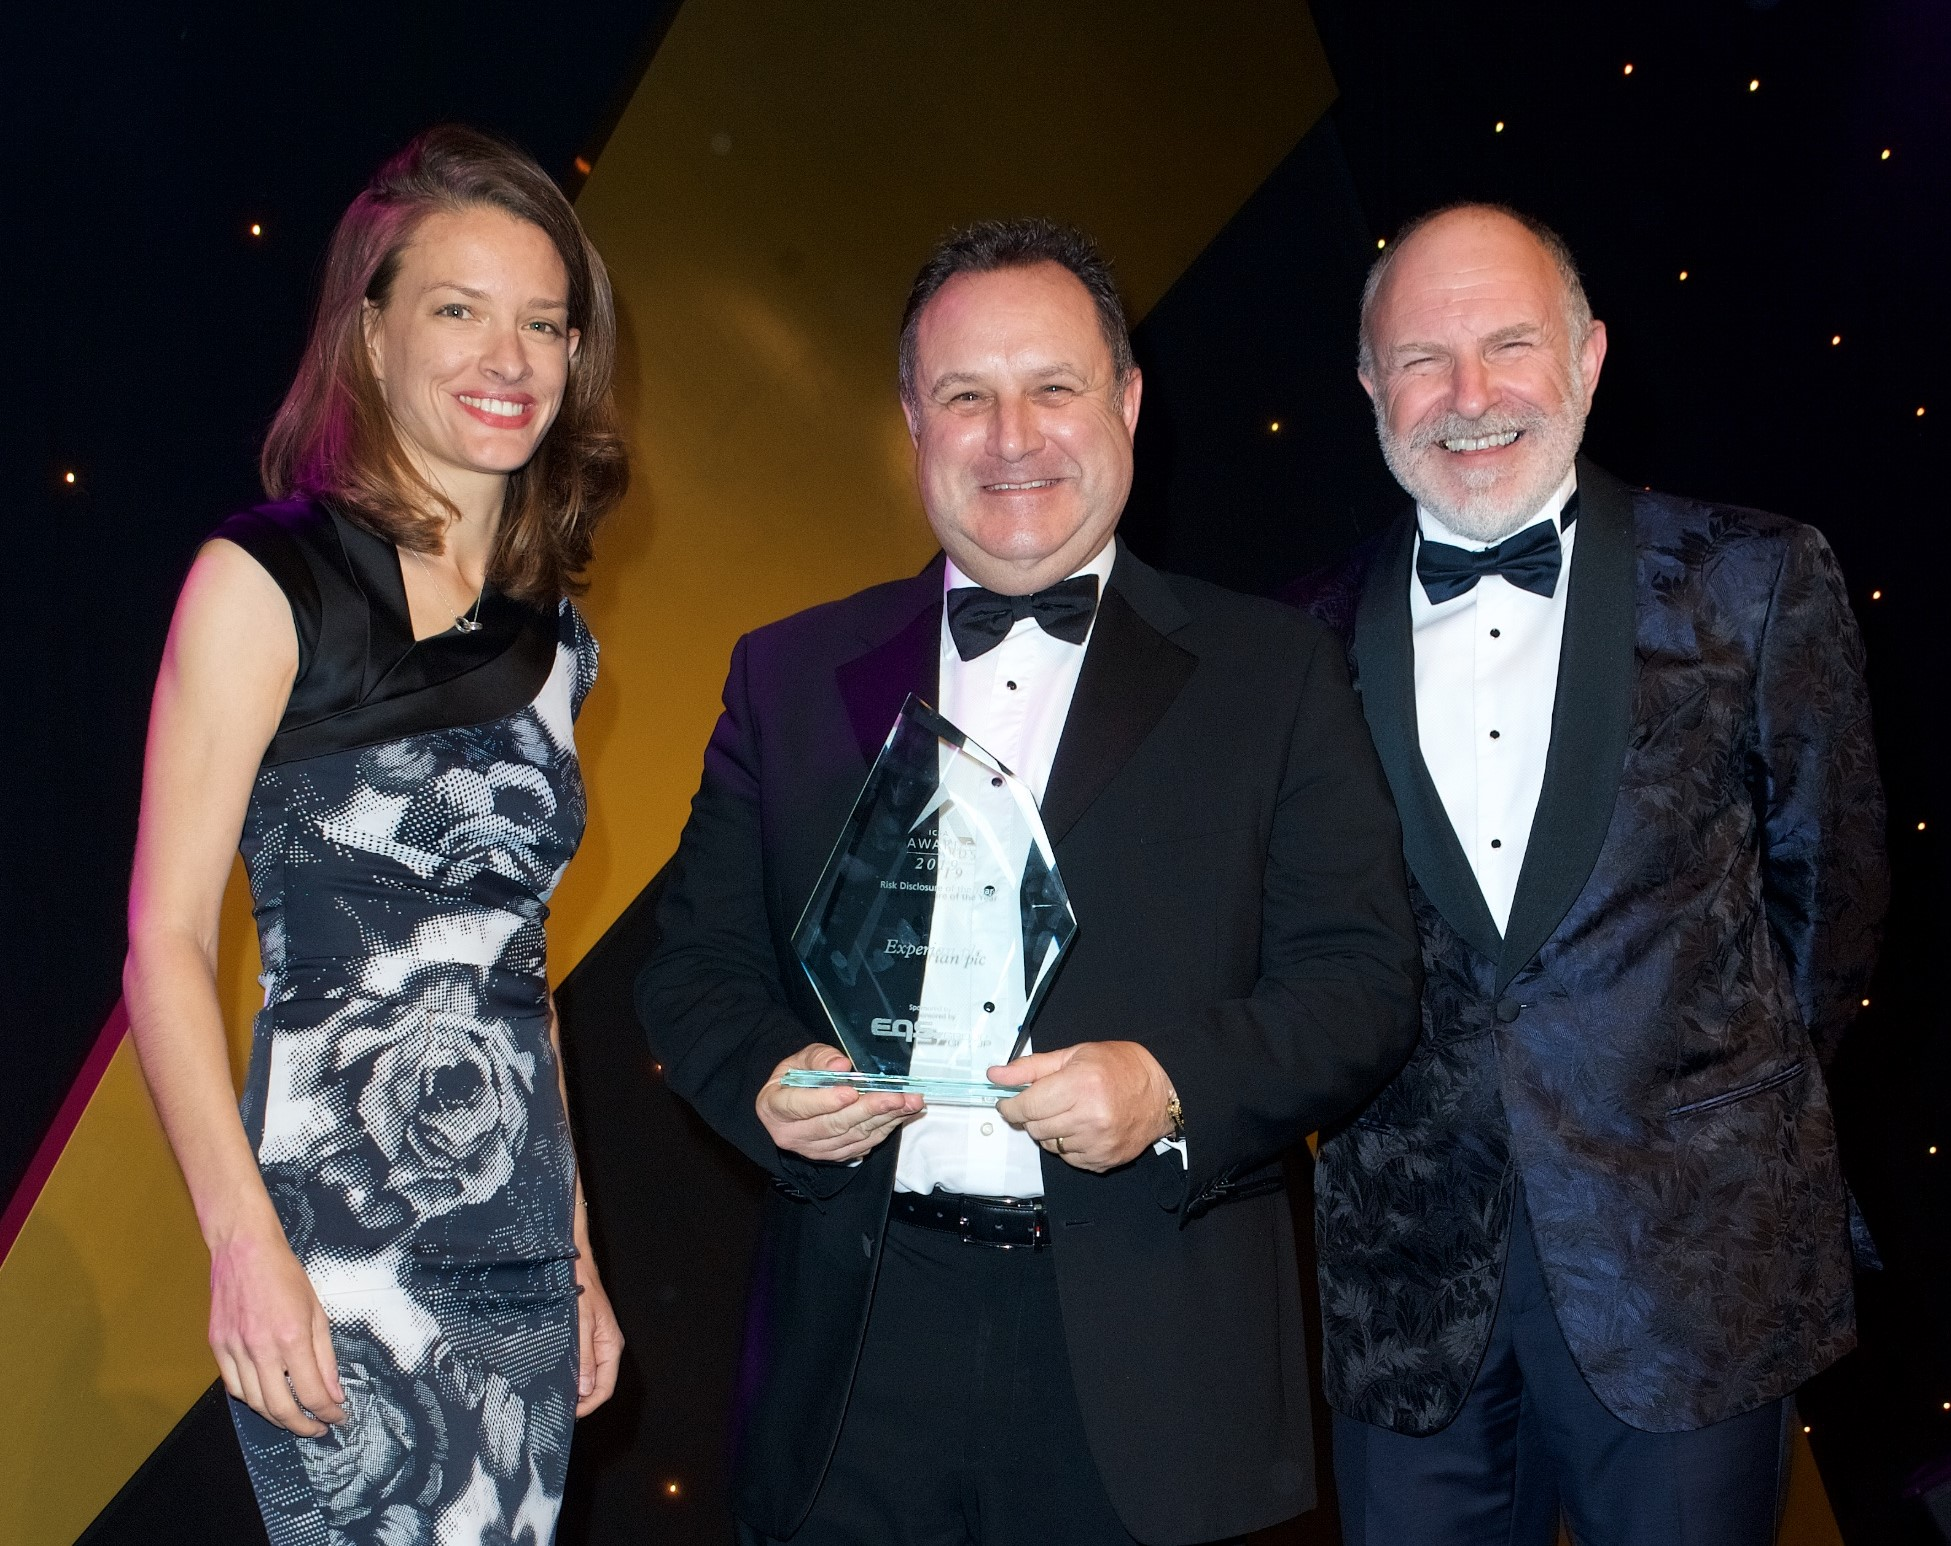 ICSA Awards - Risk Disclosure of the Year